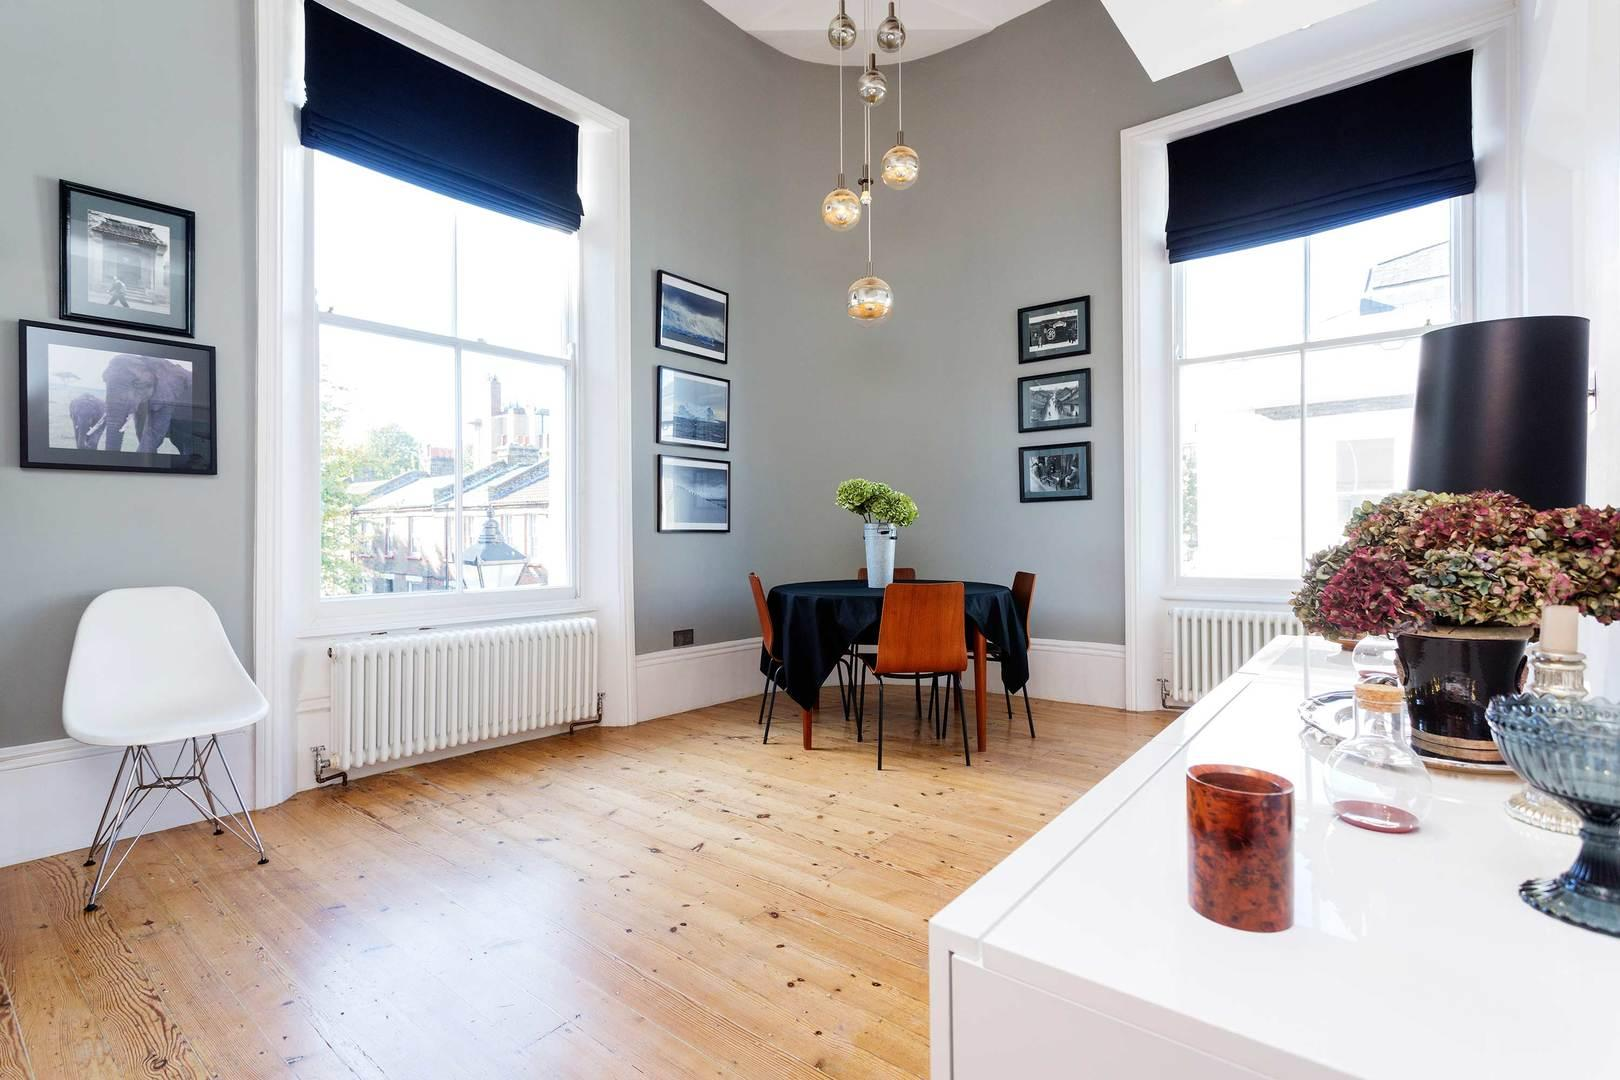 Property Image 1 - Bright 2 bedroom Apartment in Lively Shoreditch